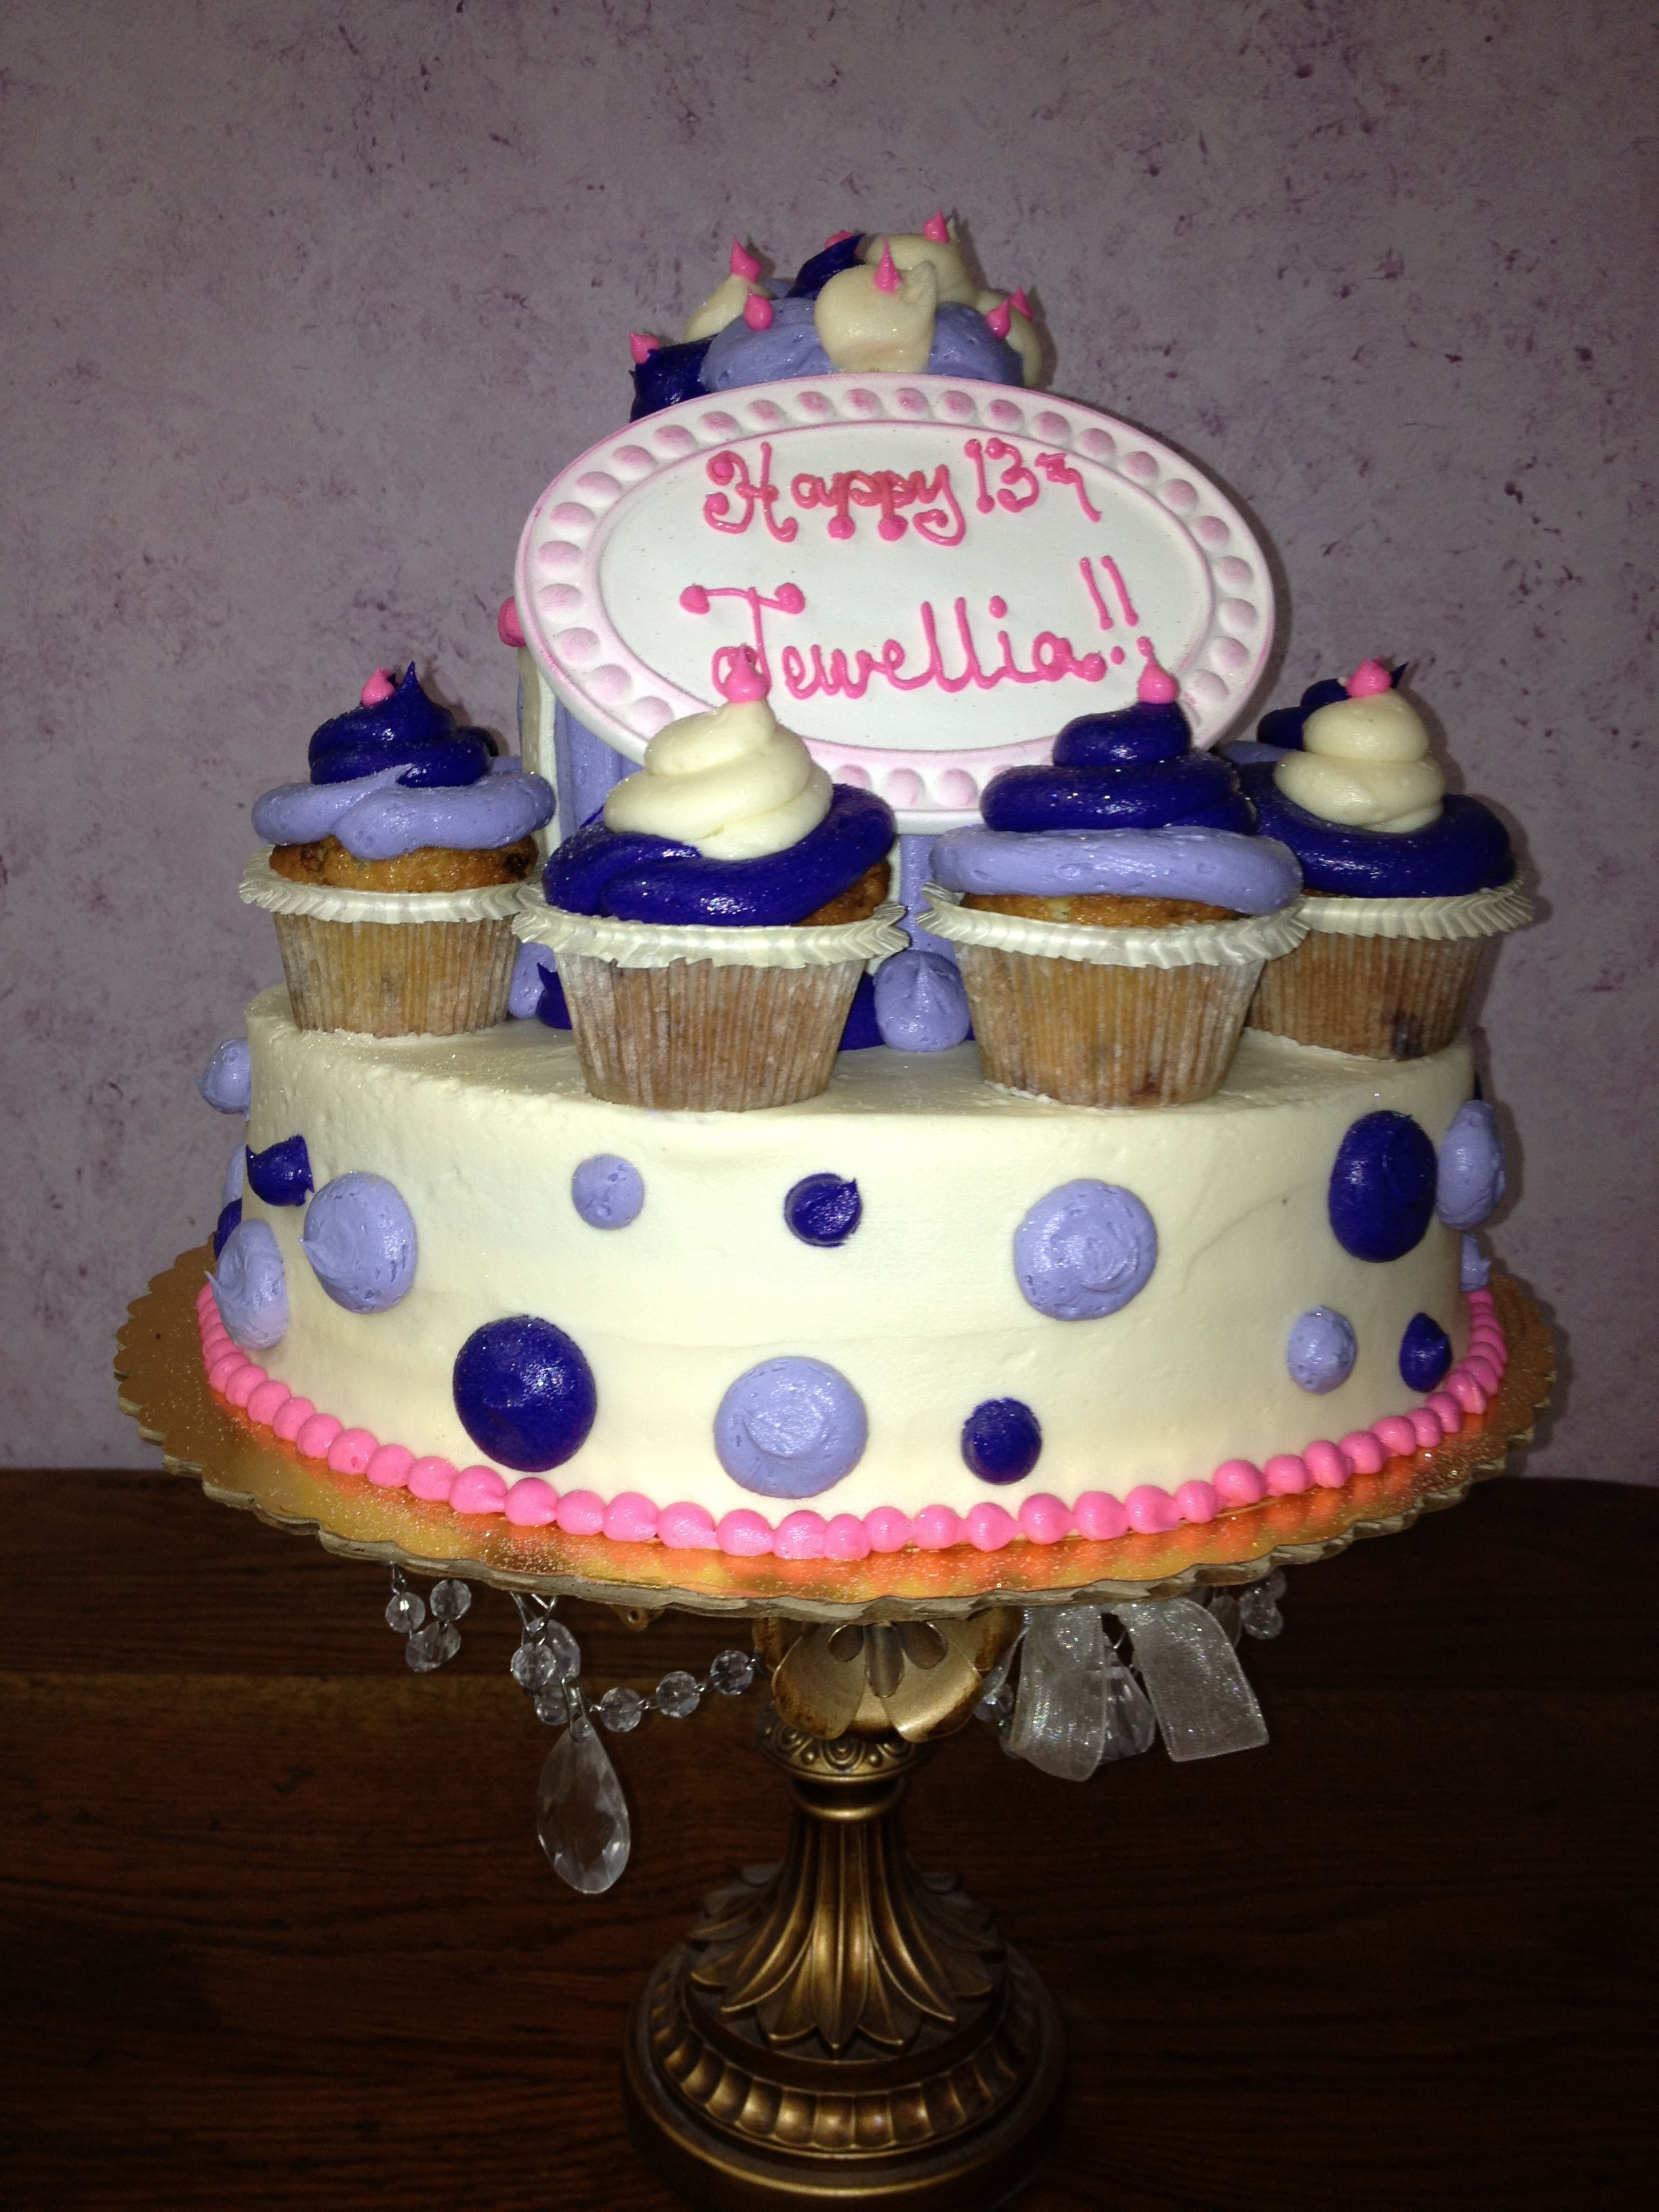 Mini cupcake and cake Birthday Cakes and Cupcakes Pinterest